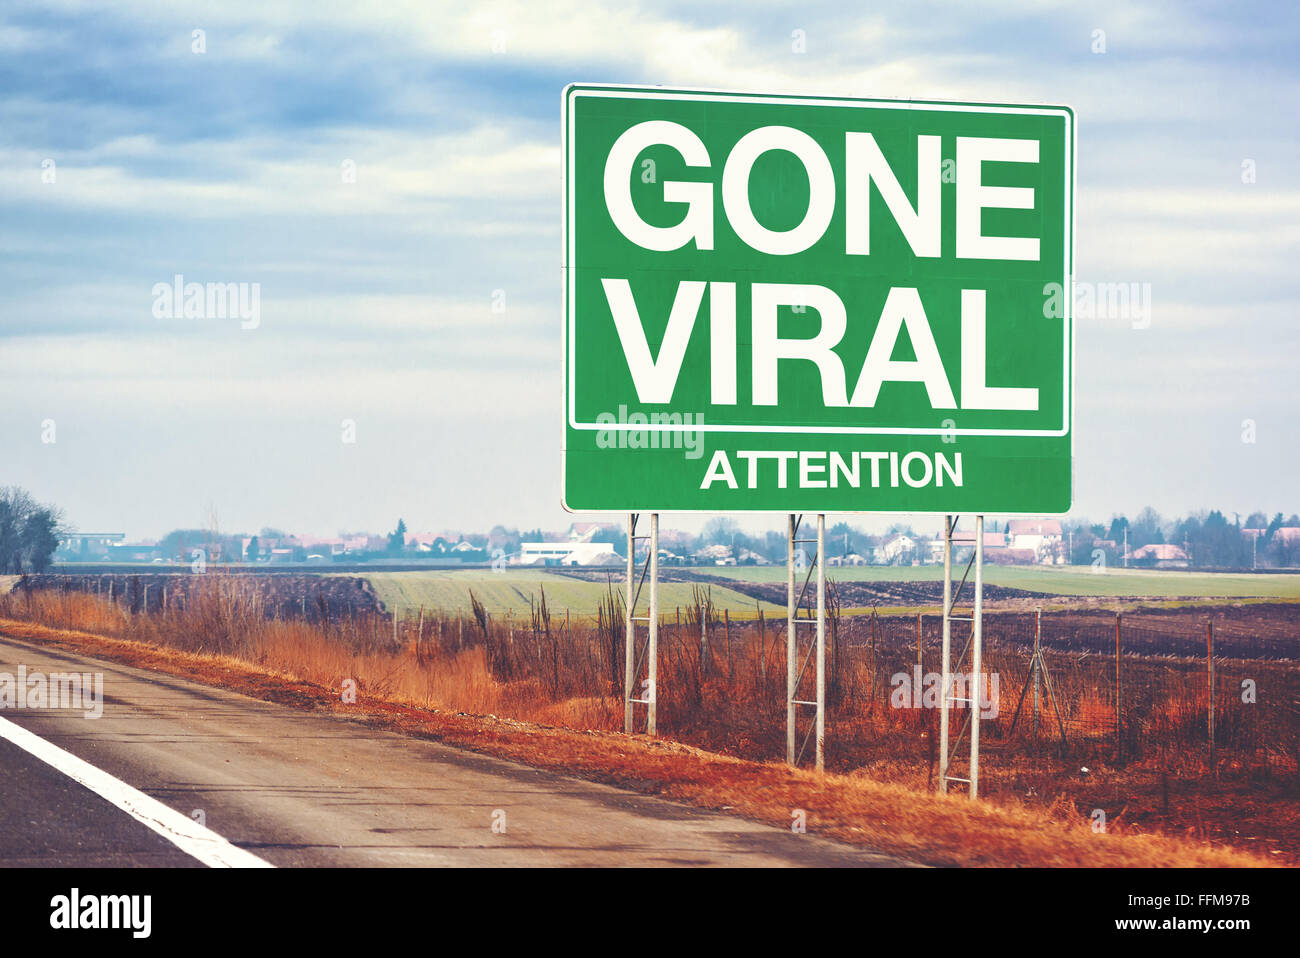 Gone viral concept with road sign, retro toned. - Stock Image